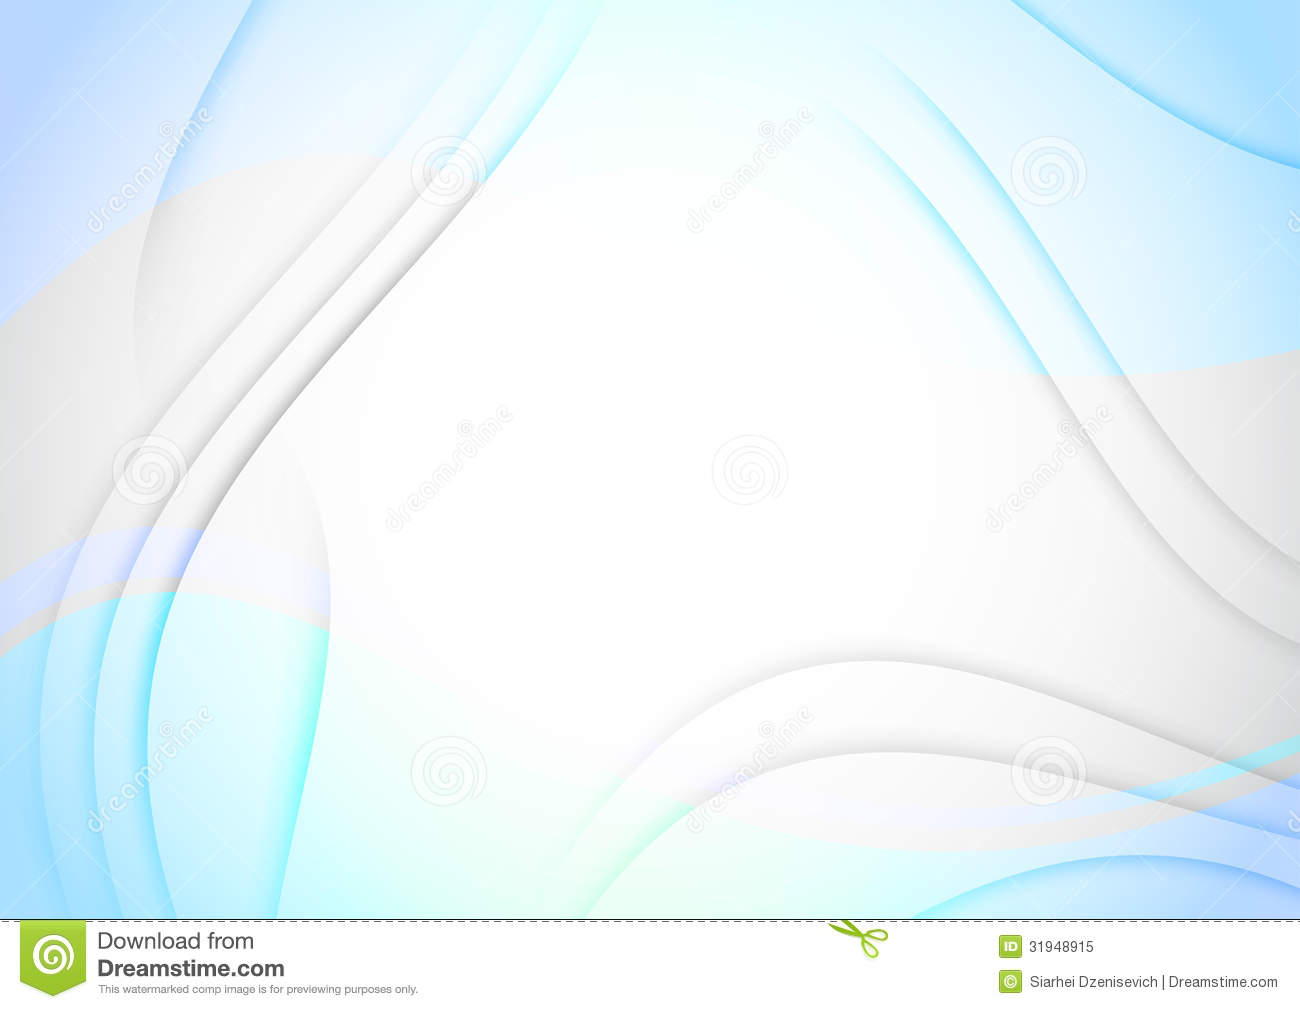 background image clipart - photo #8